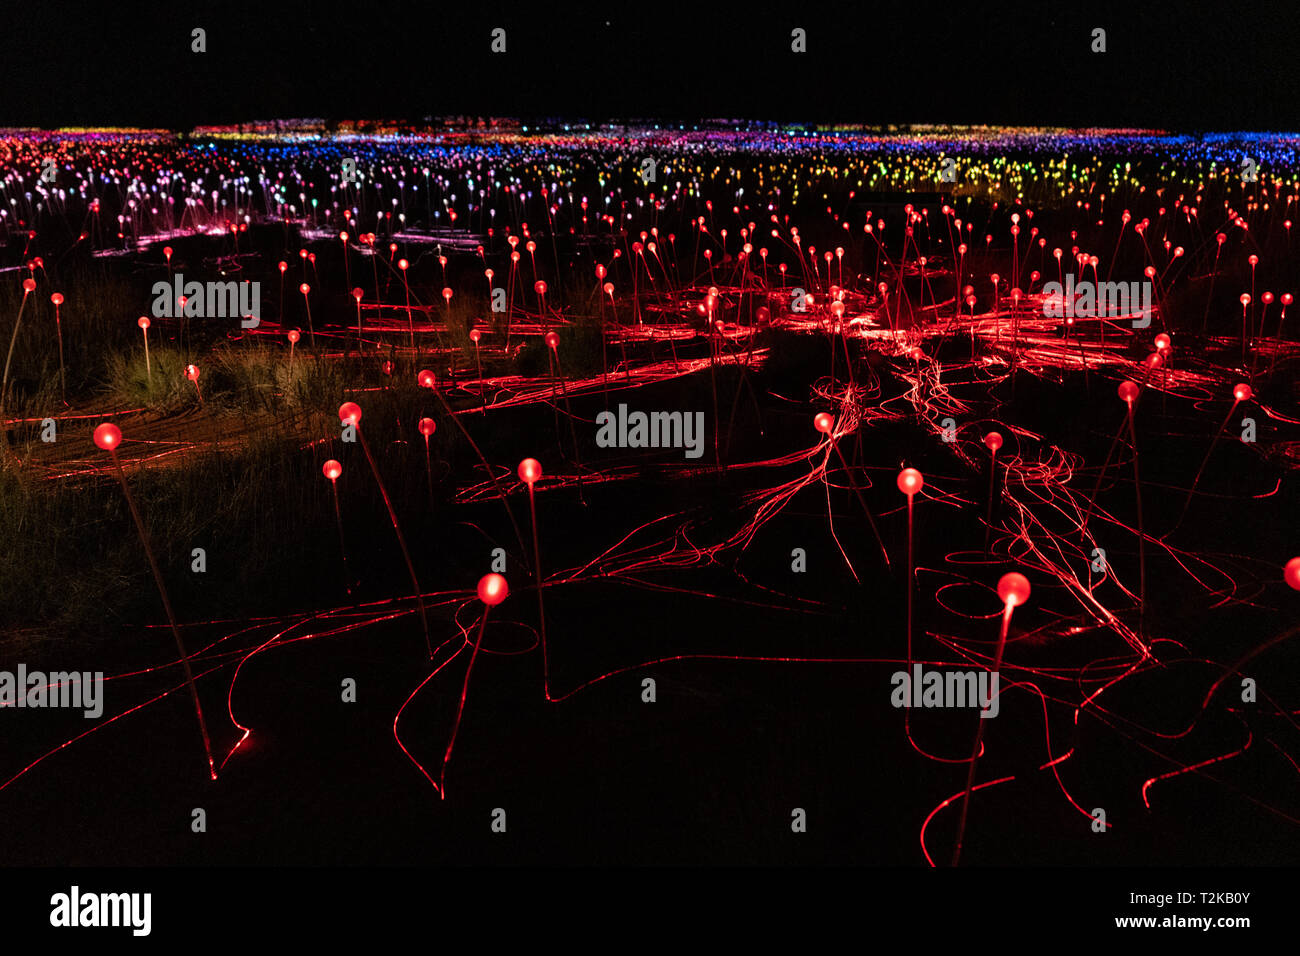 Field of light at night with mostly red lights in NT Australia - Stock Image